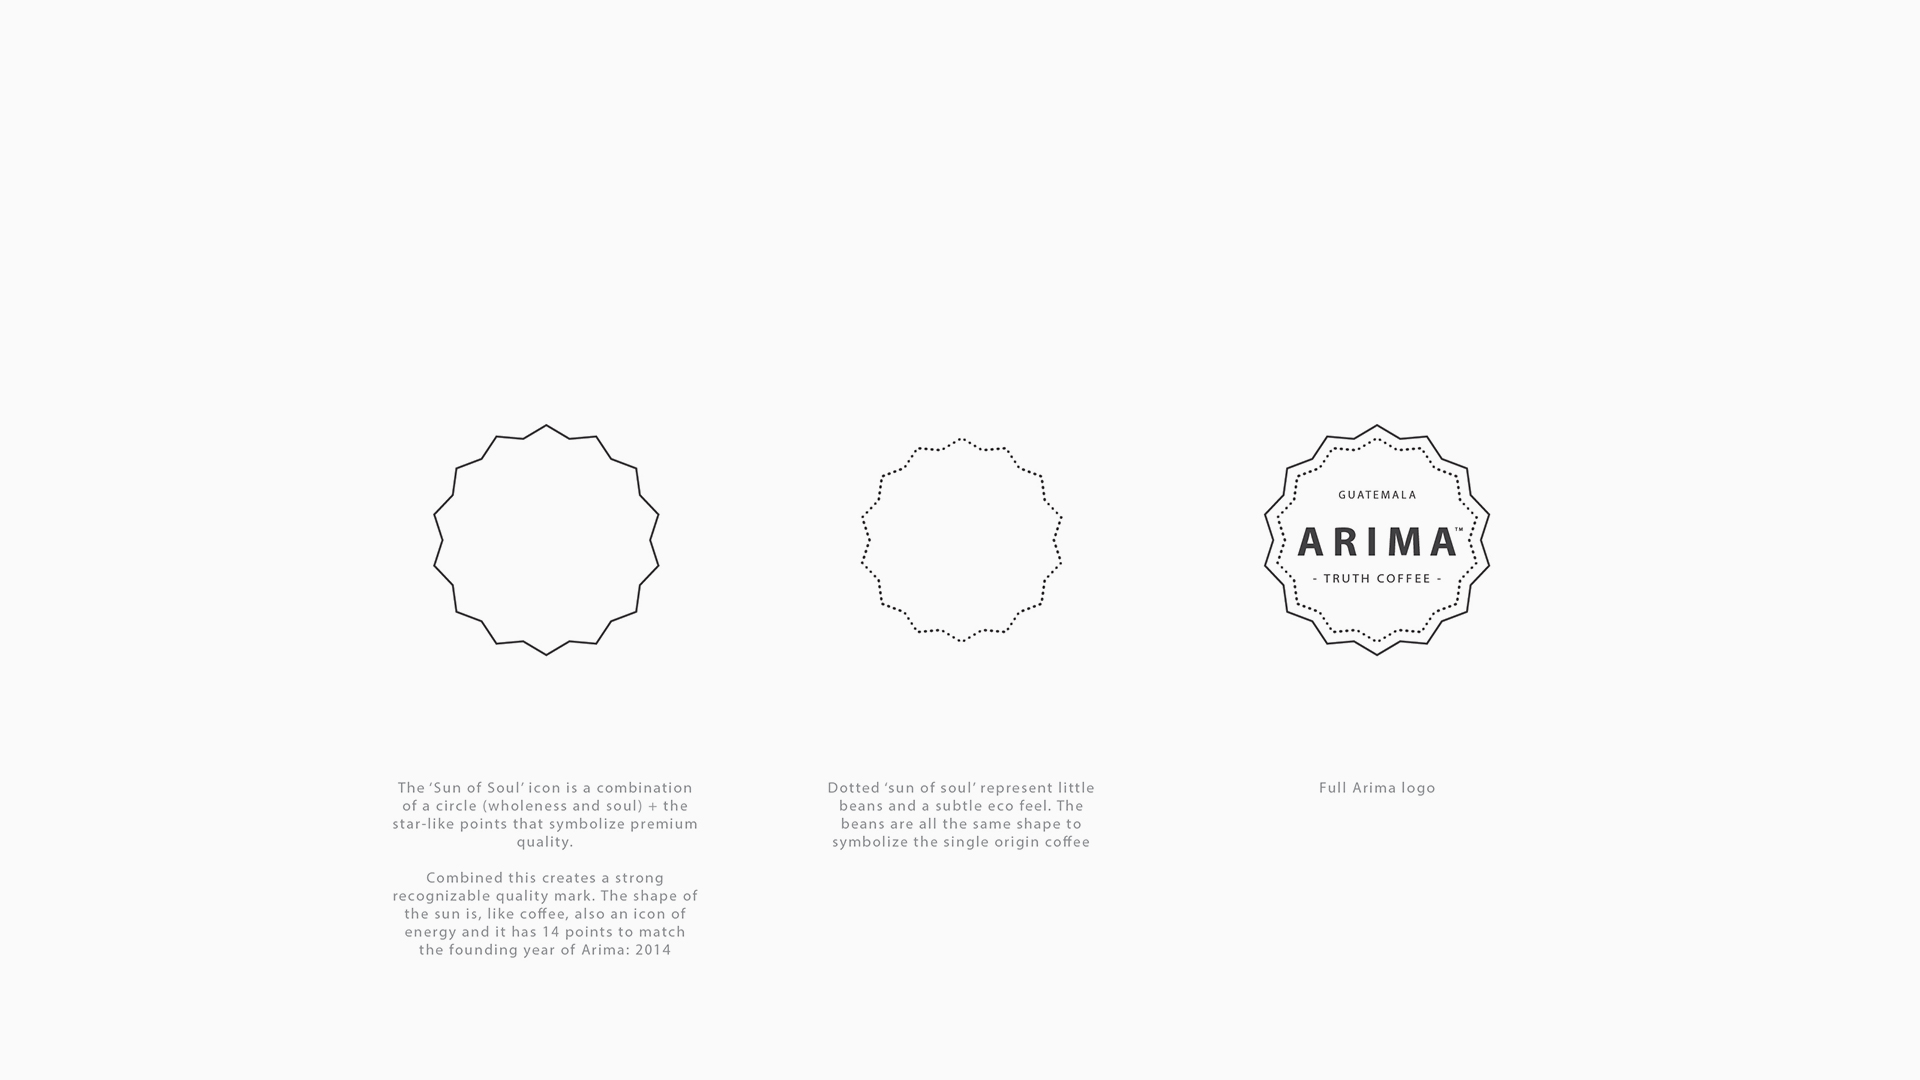 Outline  / An iconic symbol and seal of quality for the socially engaged brand.